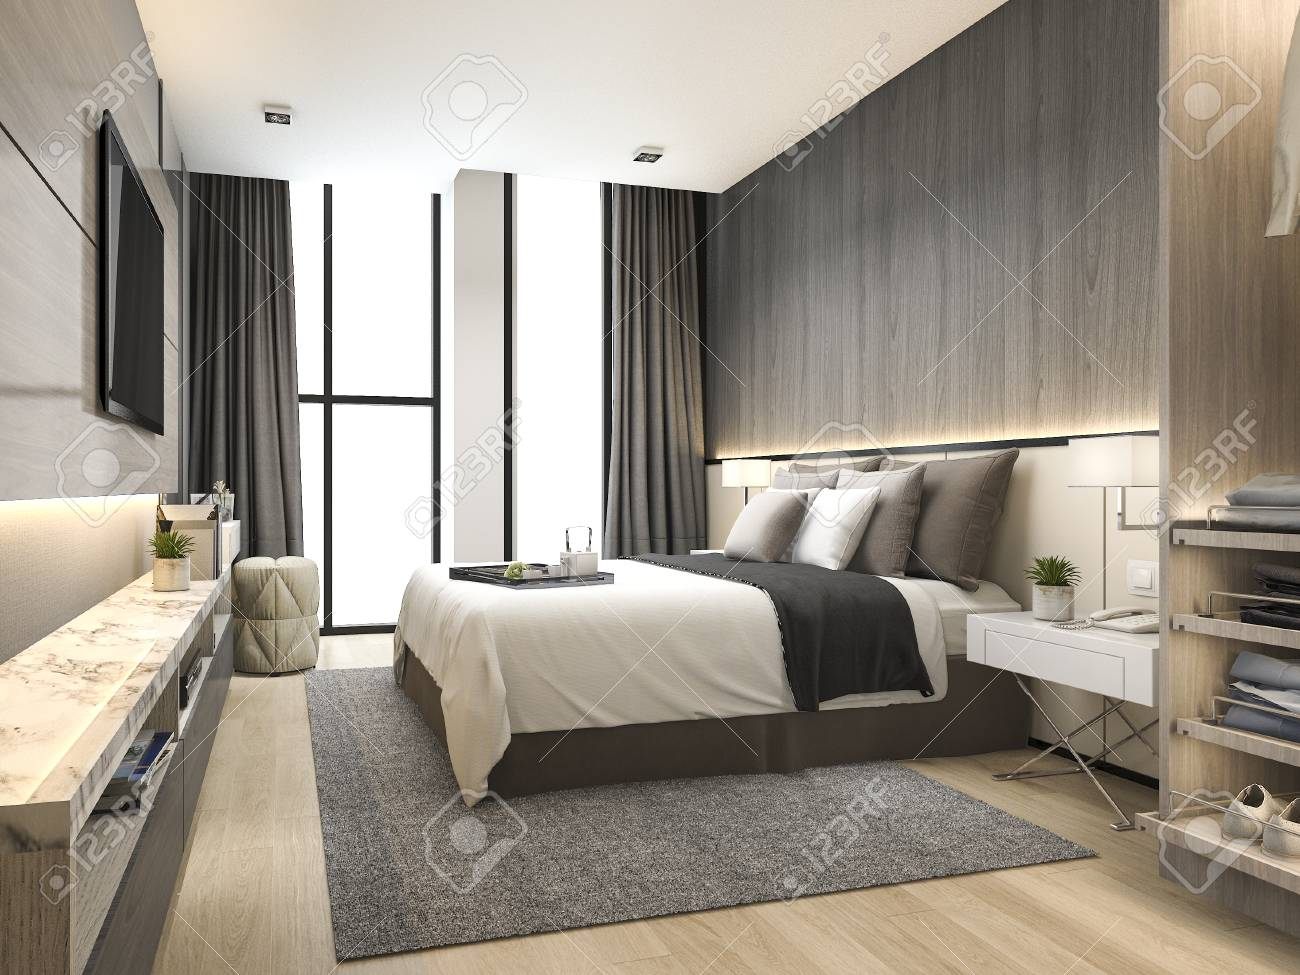 3d Rendering Luxury Modern Bedroom Suite In Hotel With Wardrobe And Walk Closet Stock Photo